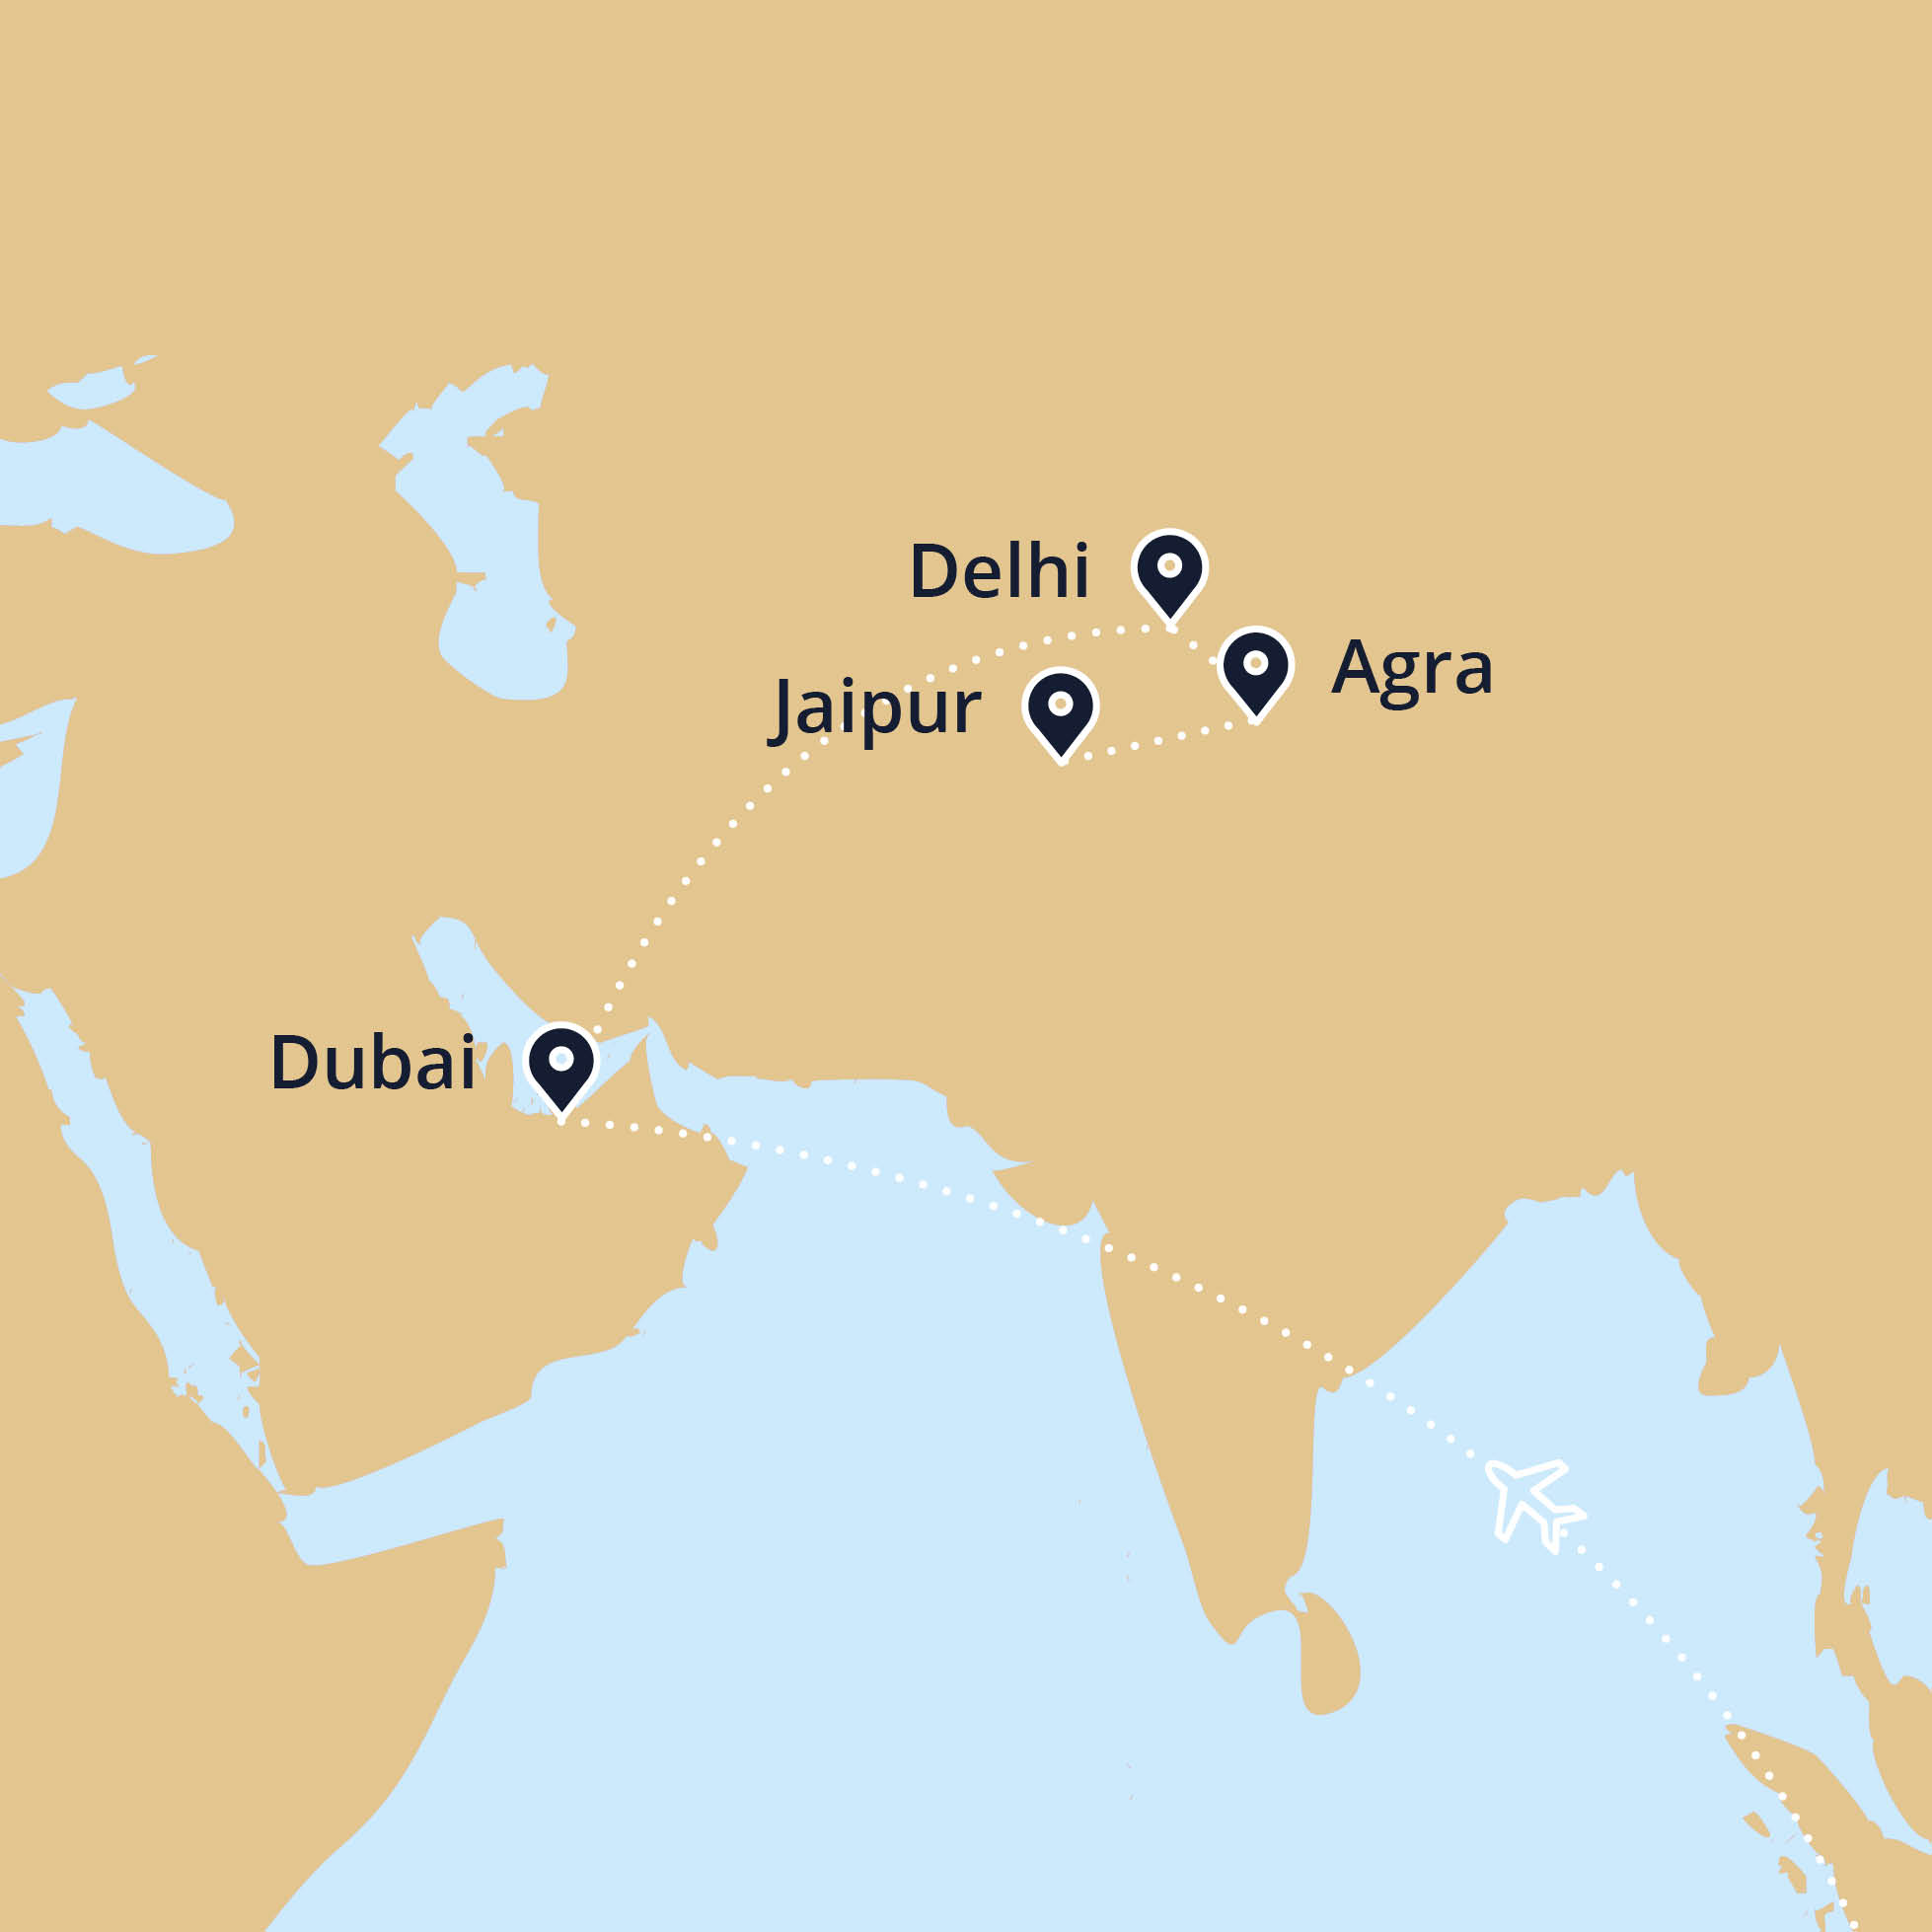 World map showing india dubai electrical wire spools free raci highlights of india dubai holiday planet australia golden triangle map highlights of india dubai world map showing india dubai world map showing india dubai gumiabroncs Image collections